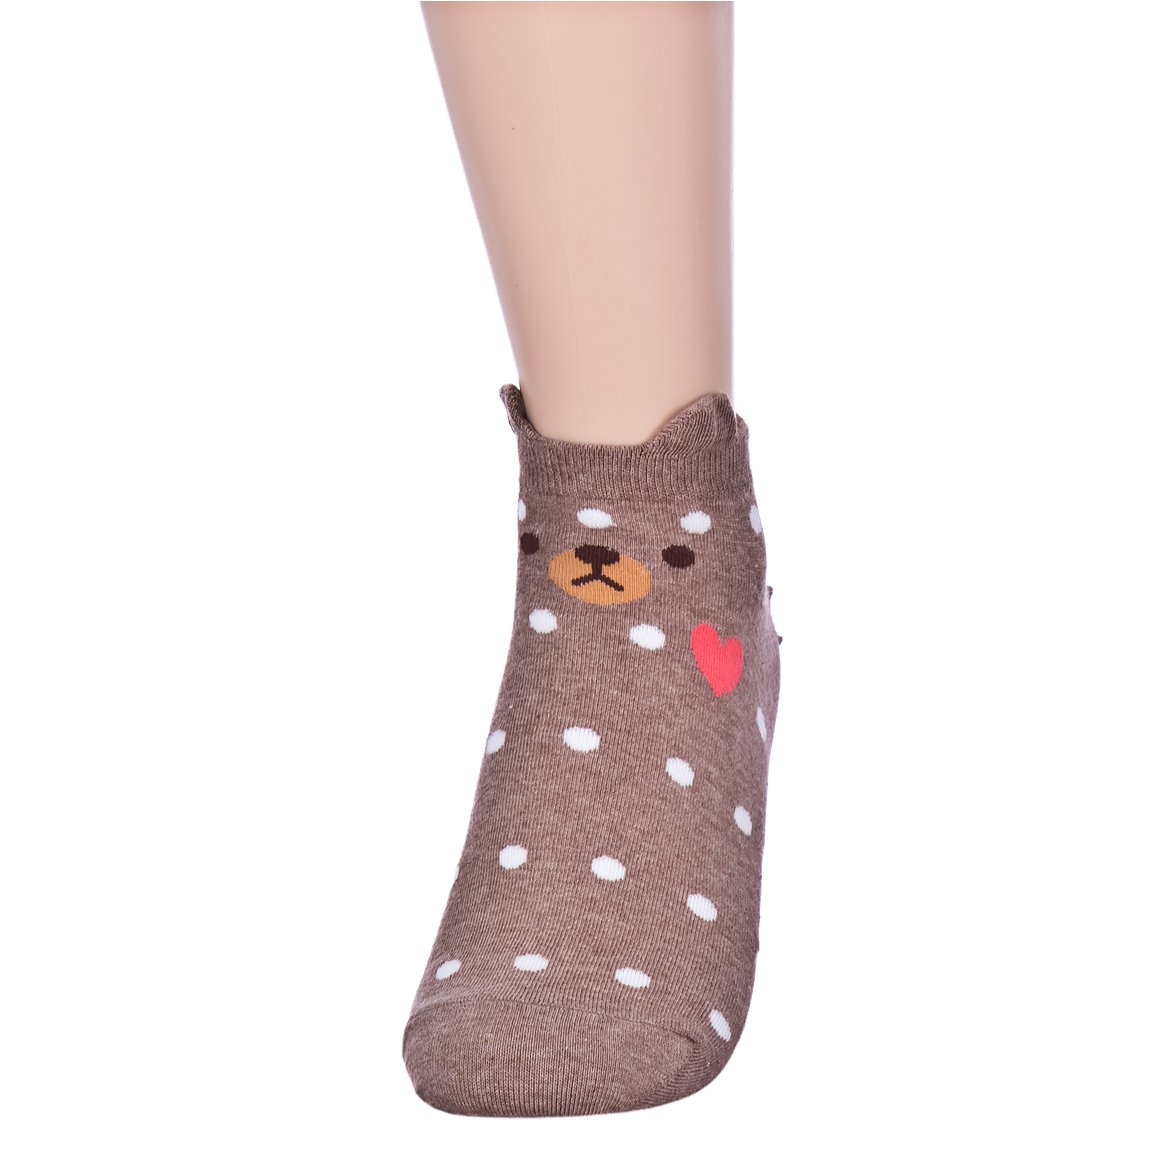 Fall in Love Animal Charater Casual Sneakers Socks (Onesize, 5 Pairs) by Dani's Choice (Image #5)